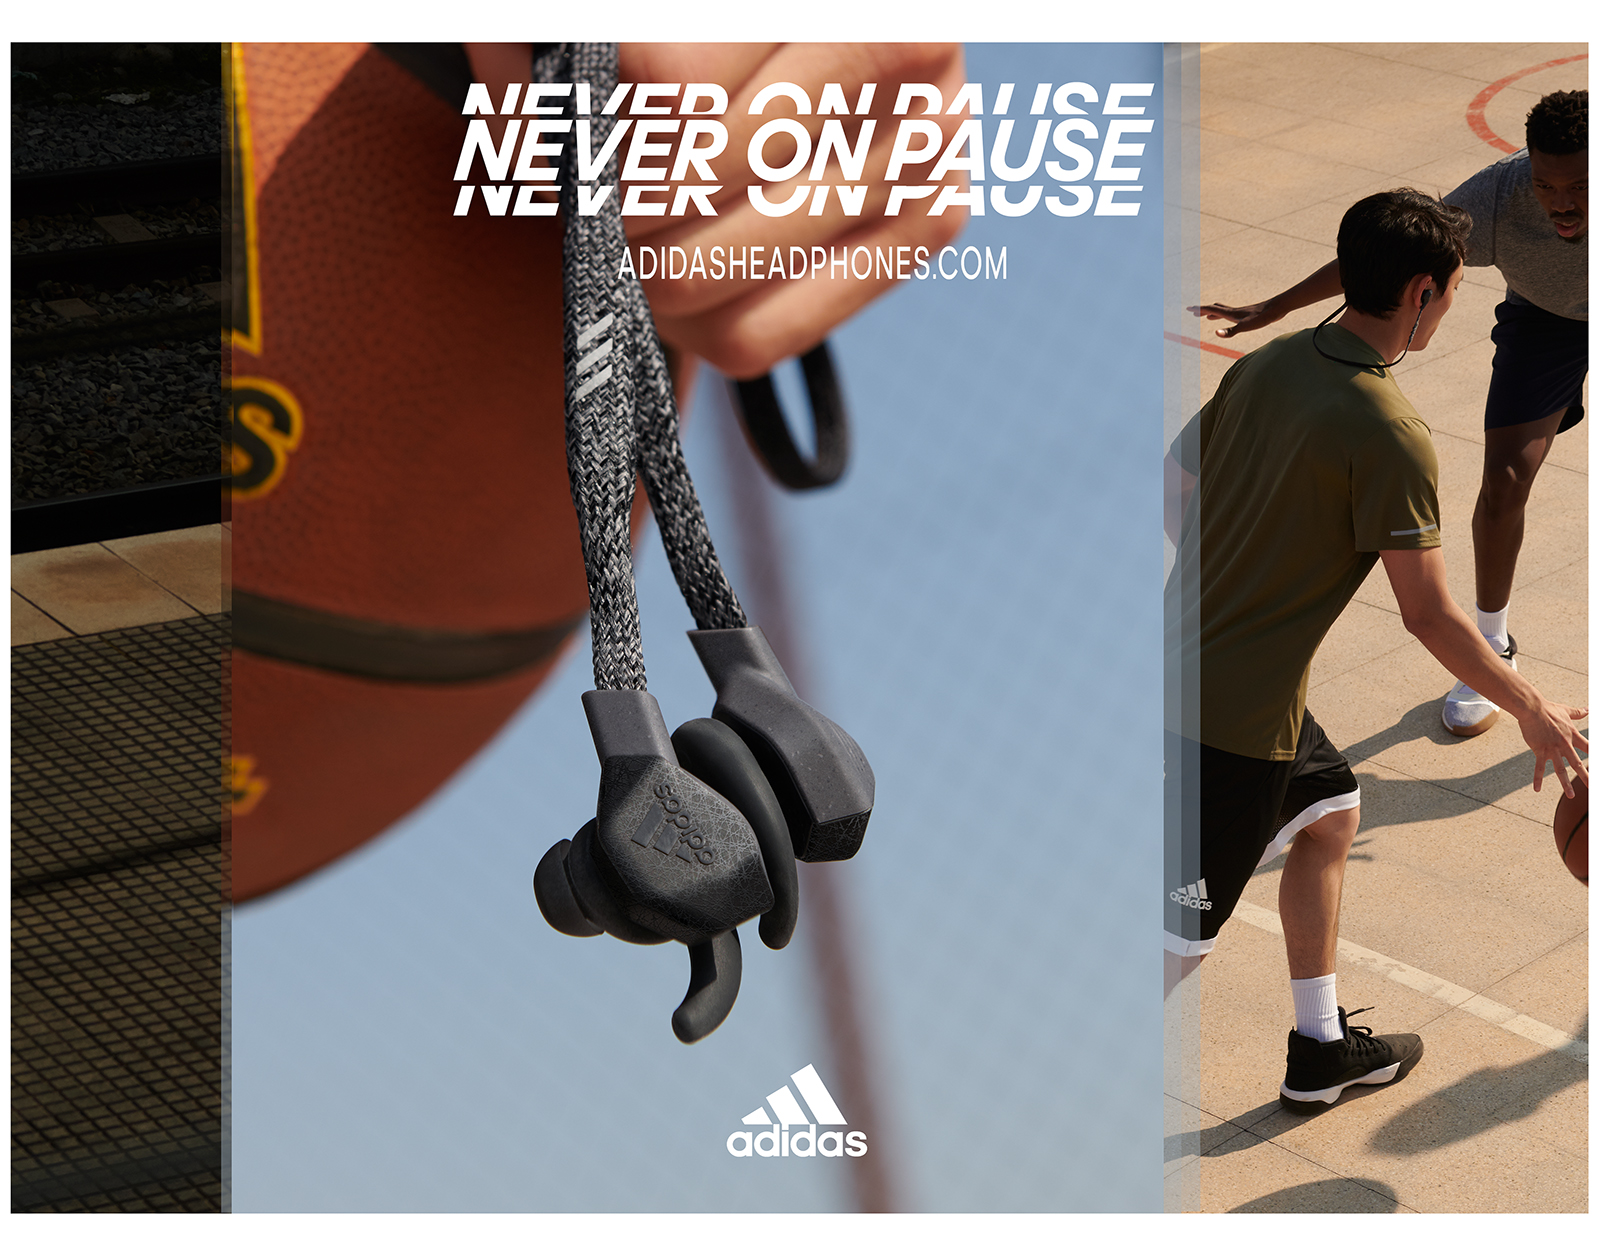 ASS_adidas_never on pause 01.jpg